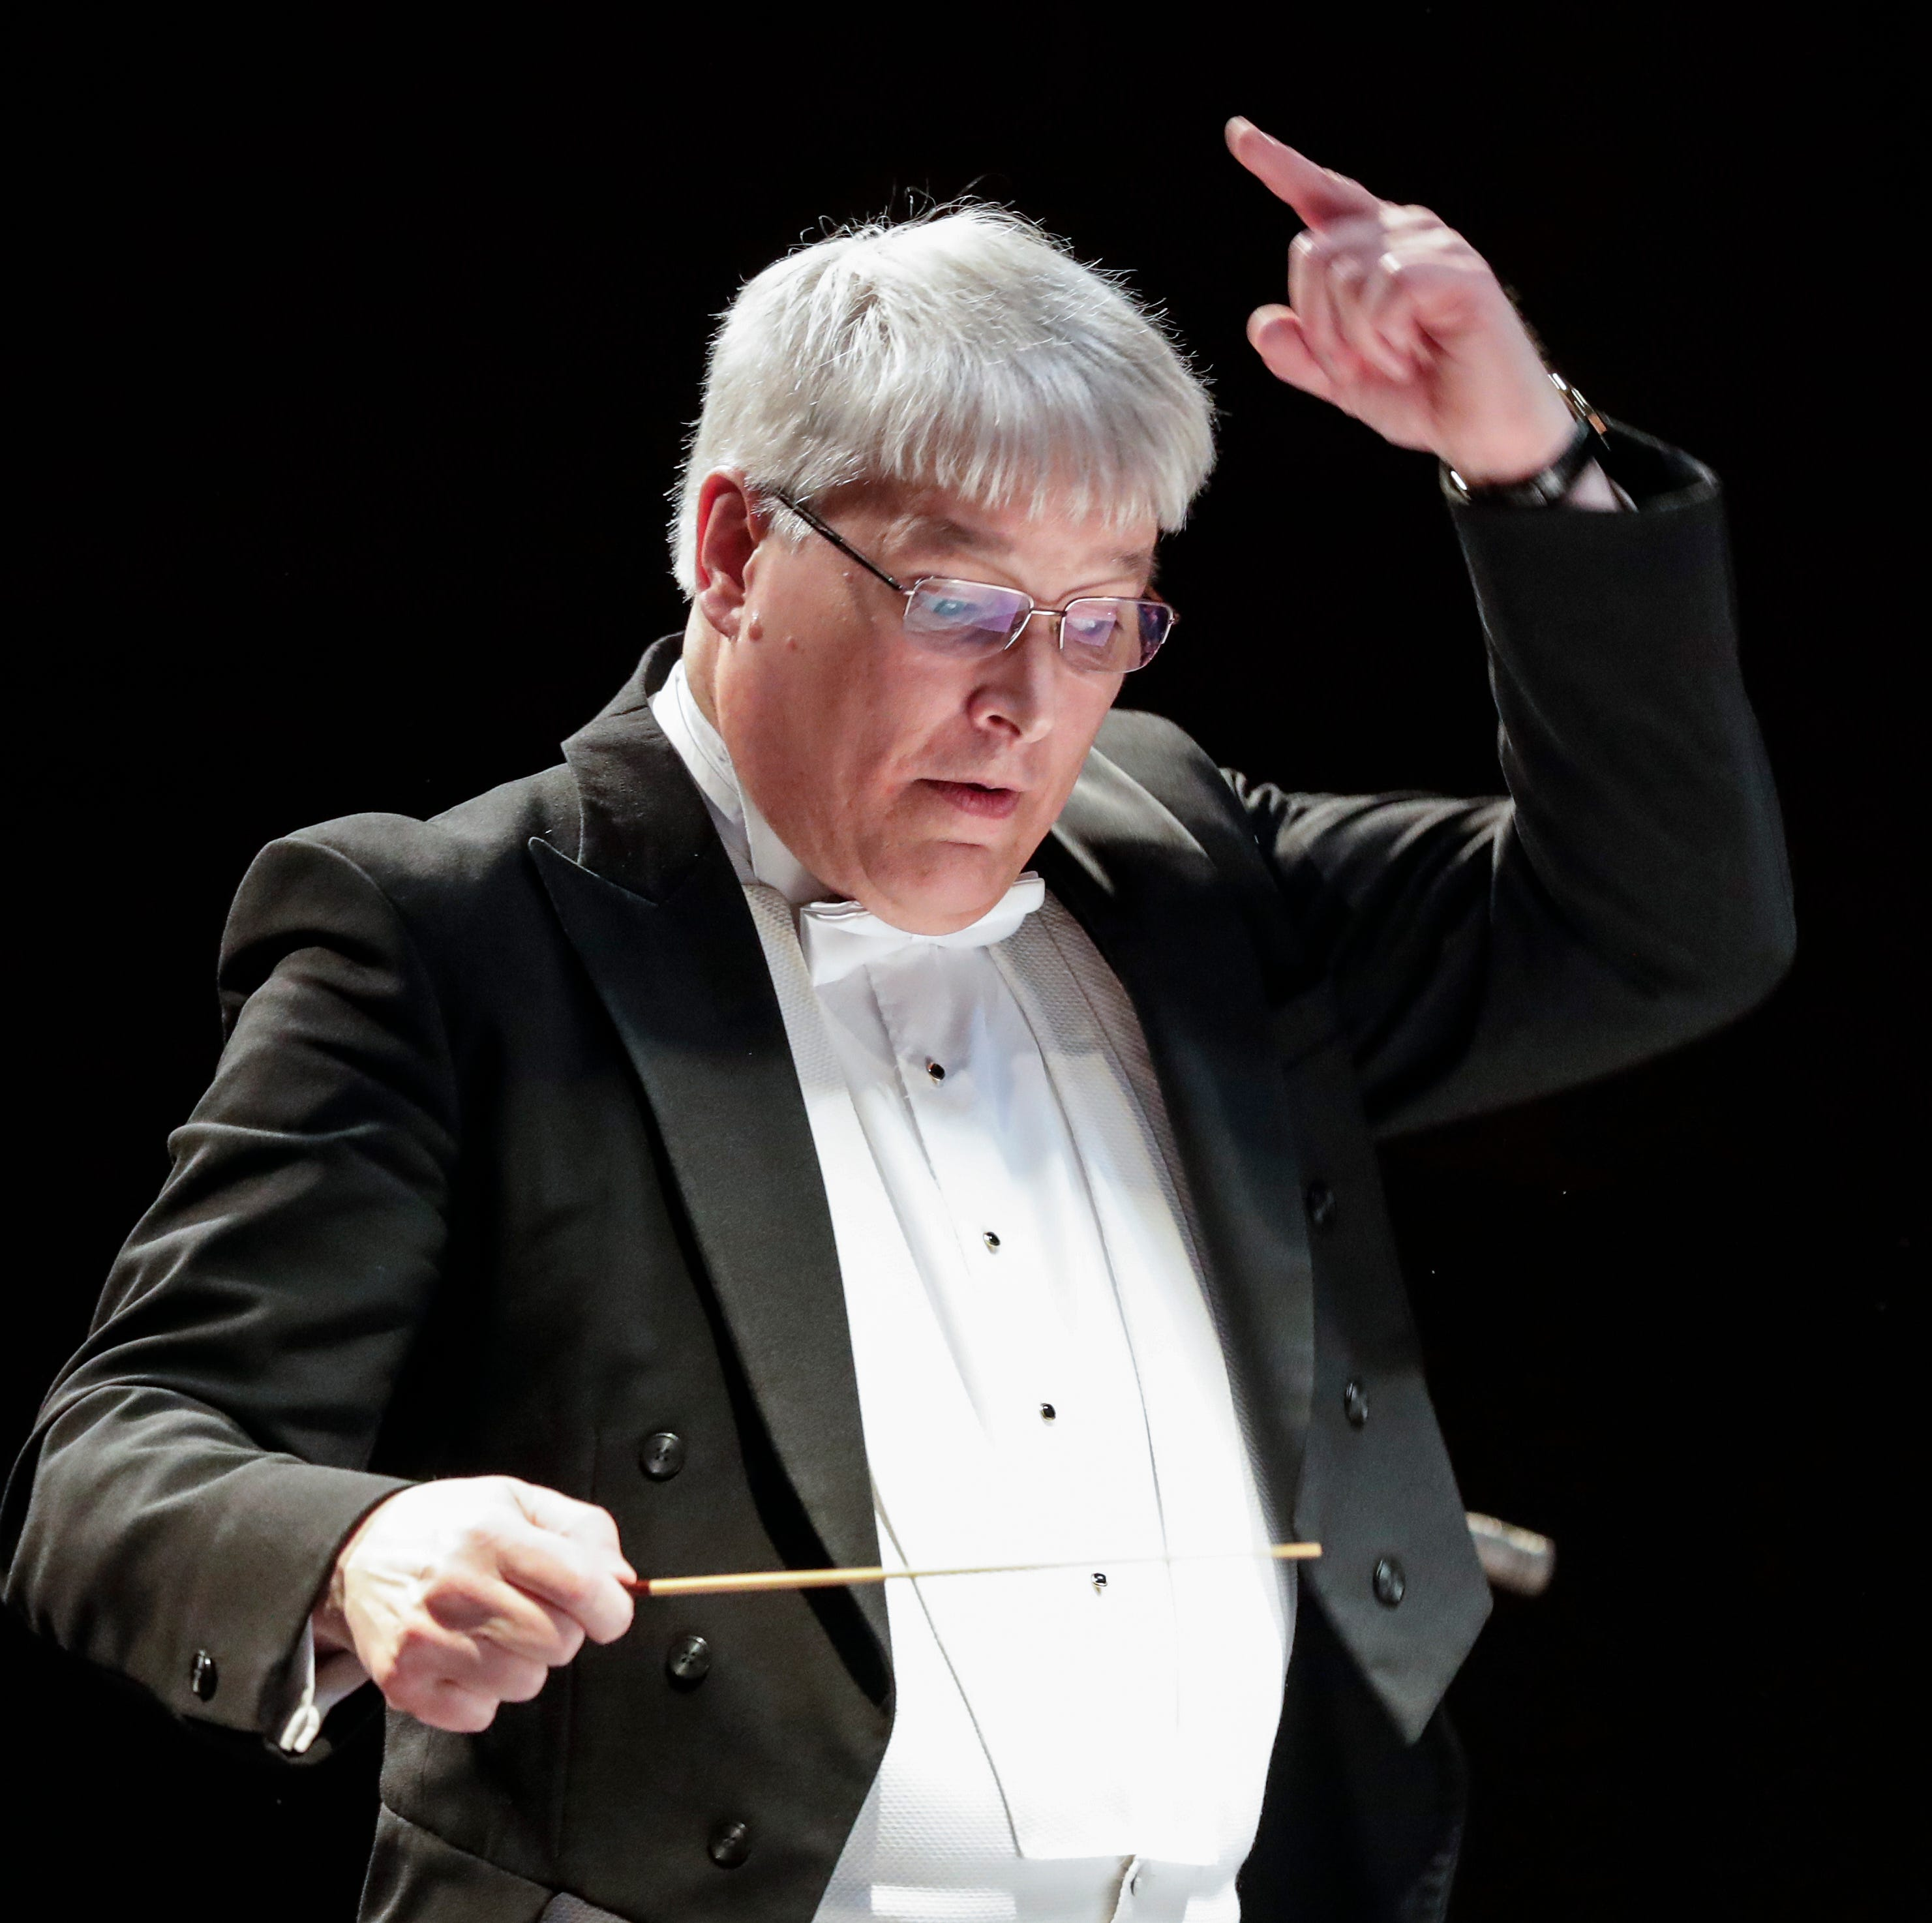 MSO's Wayne Wildman on 29 years as maestro, music career path | Making Manitowoc